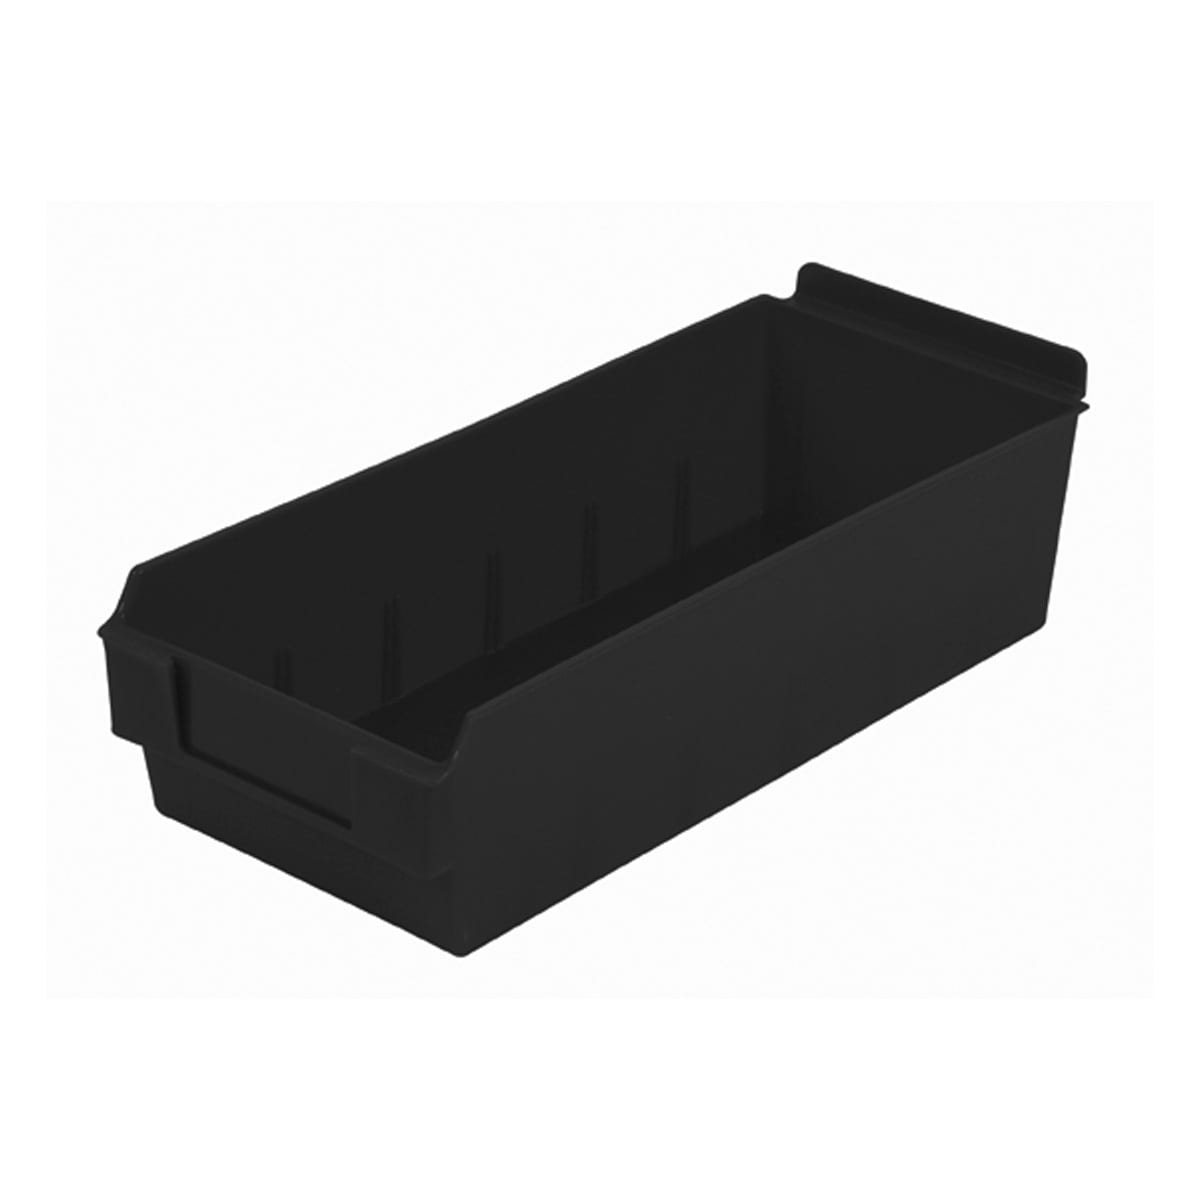 shelfbox 300 black